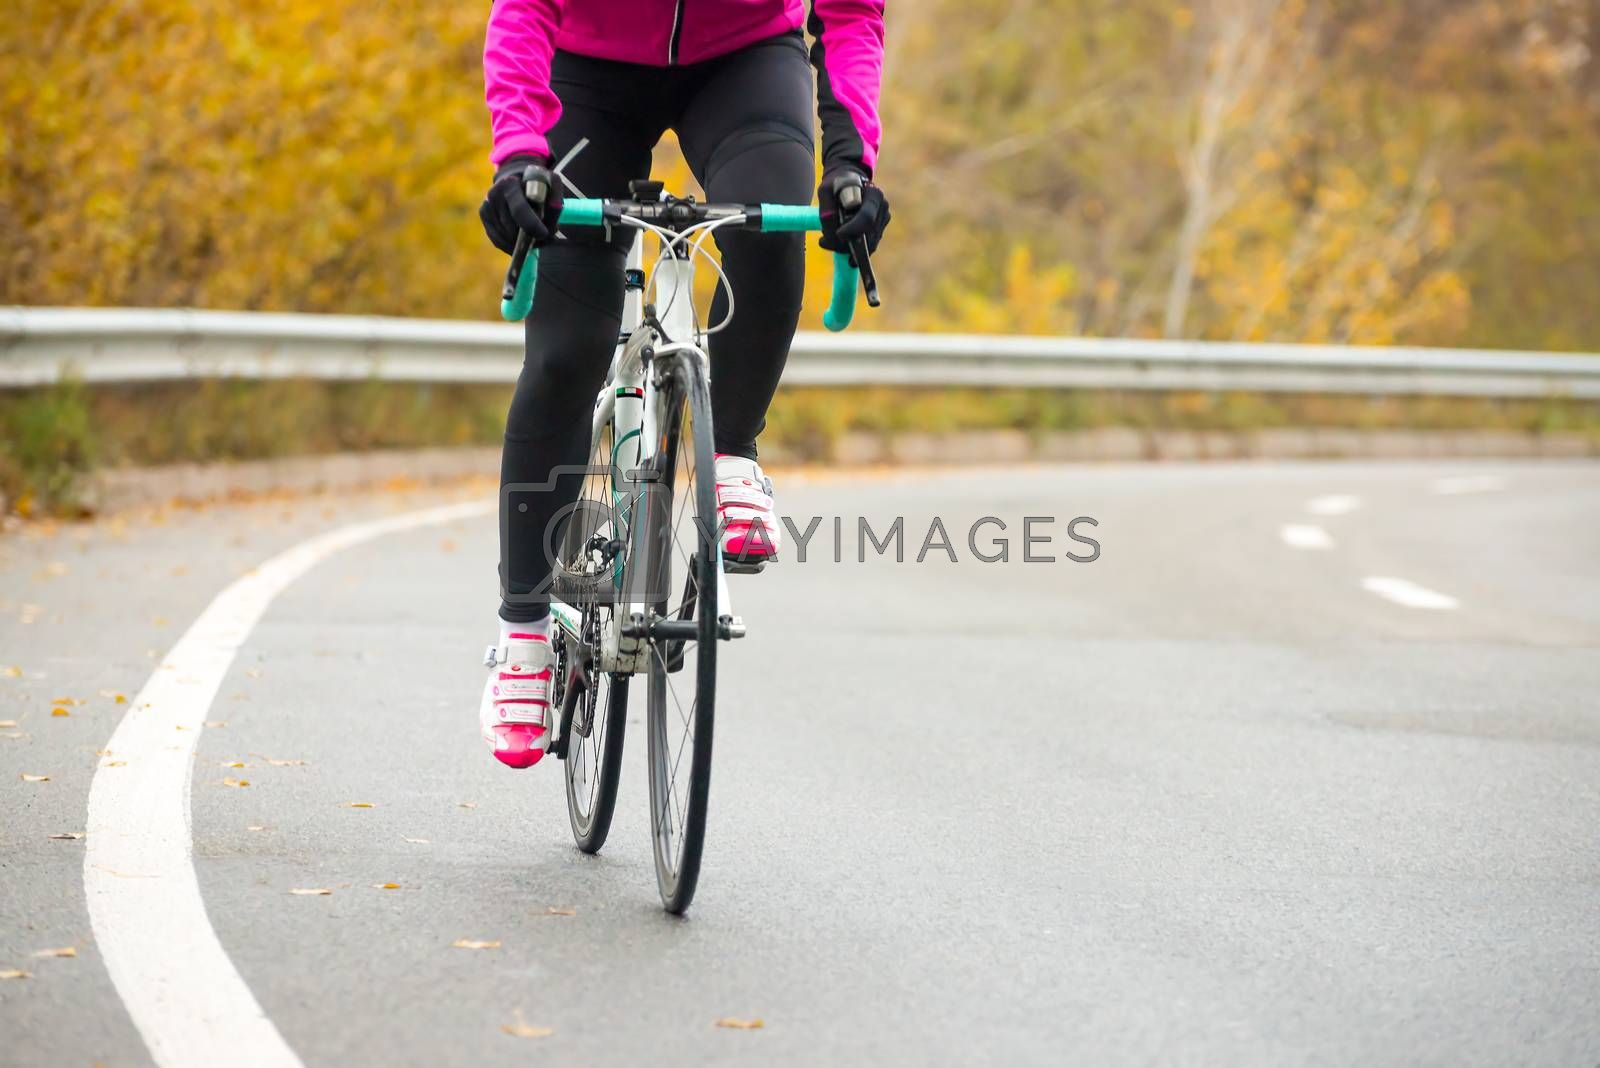 Young Woman in Pink Jacket Riding Road Bicycle on the Highway in the Cold Autumn Day. Healthy Lifestyle. by maxpro